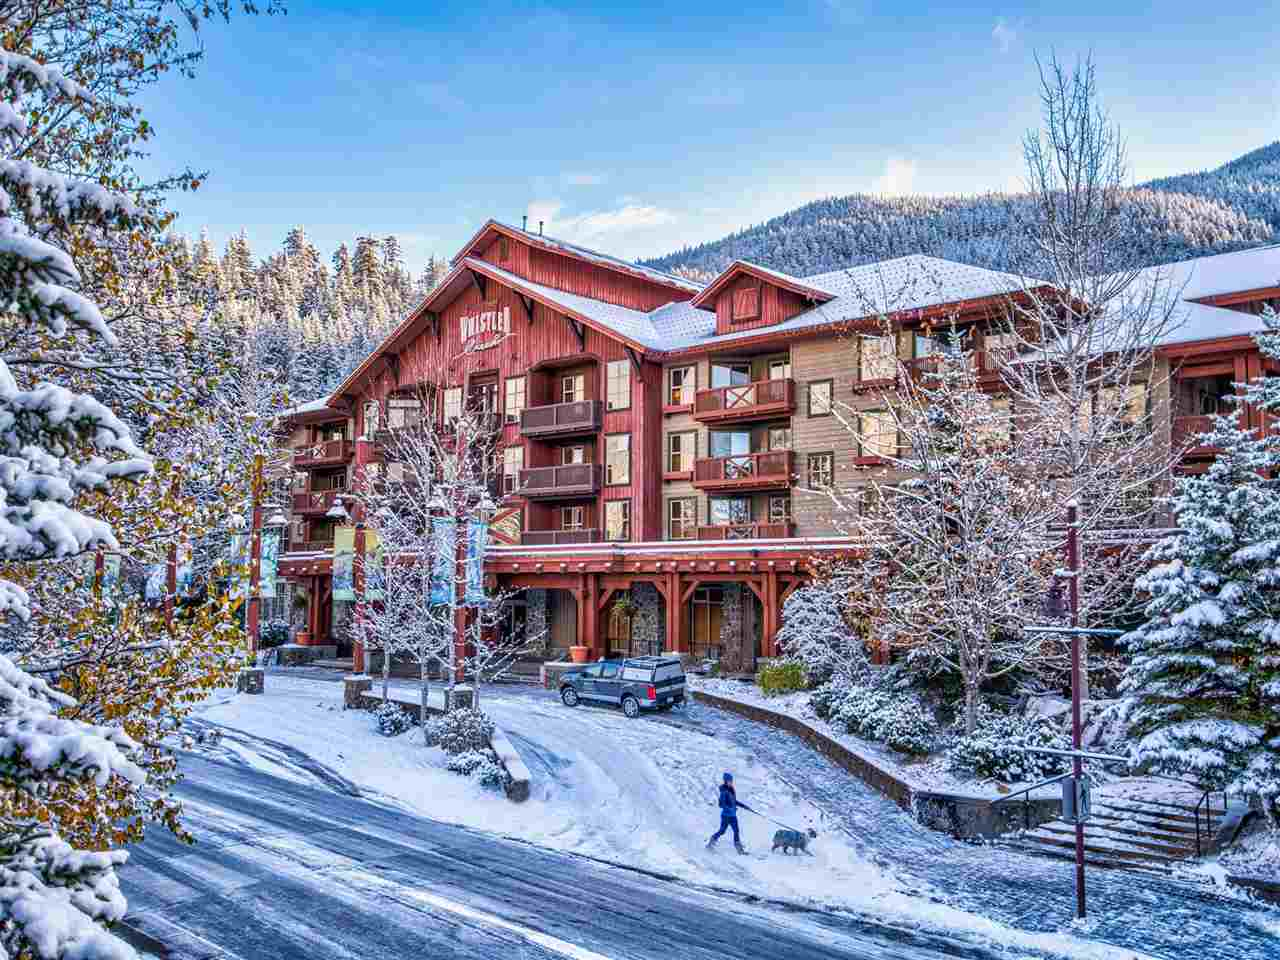 331D 2036 LONDON LANE - Whistler Creek Apartment/Condo for sale, 2 Bedrooms (R2454947)